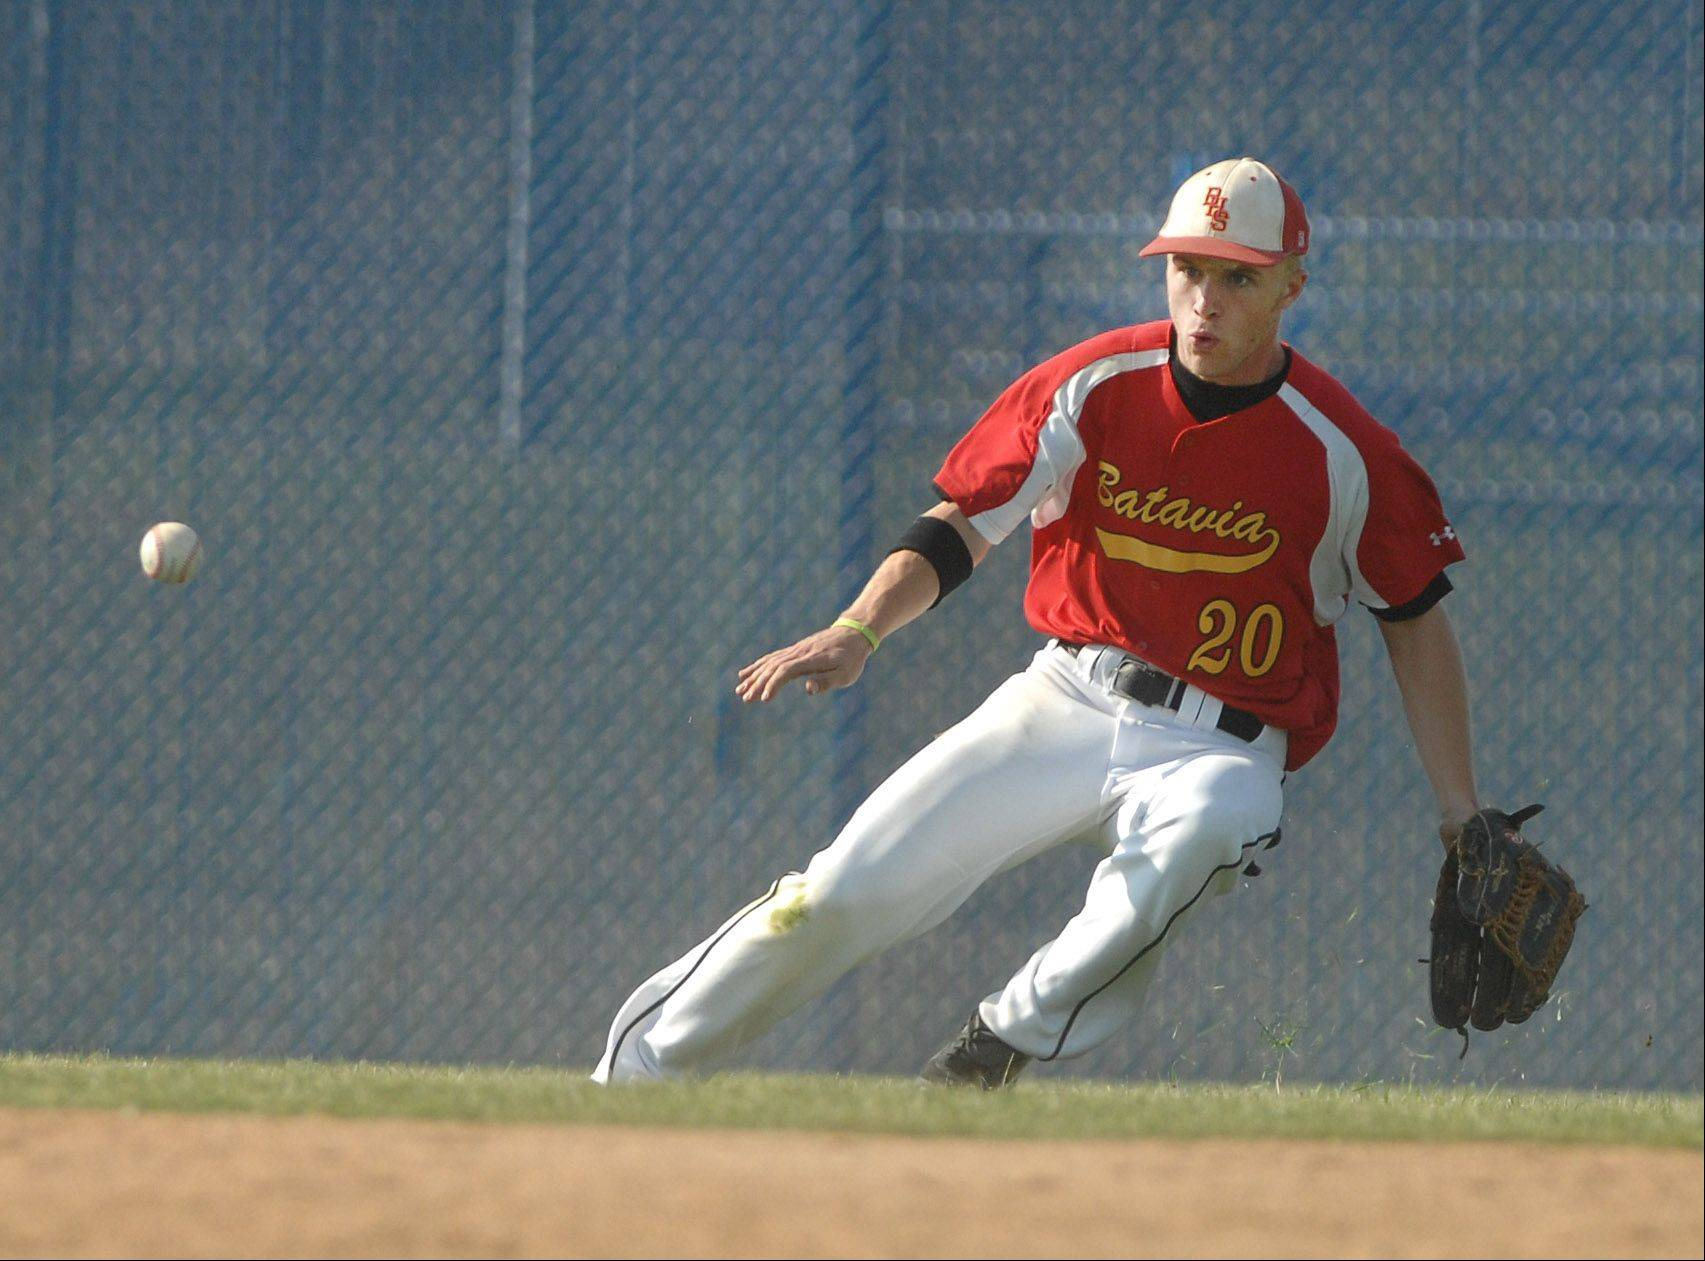 Sam Burnoski of Batavia keeps an eye on the ball during Thursday's baseball game against Addison Trail.